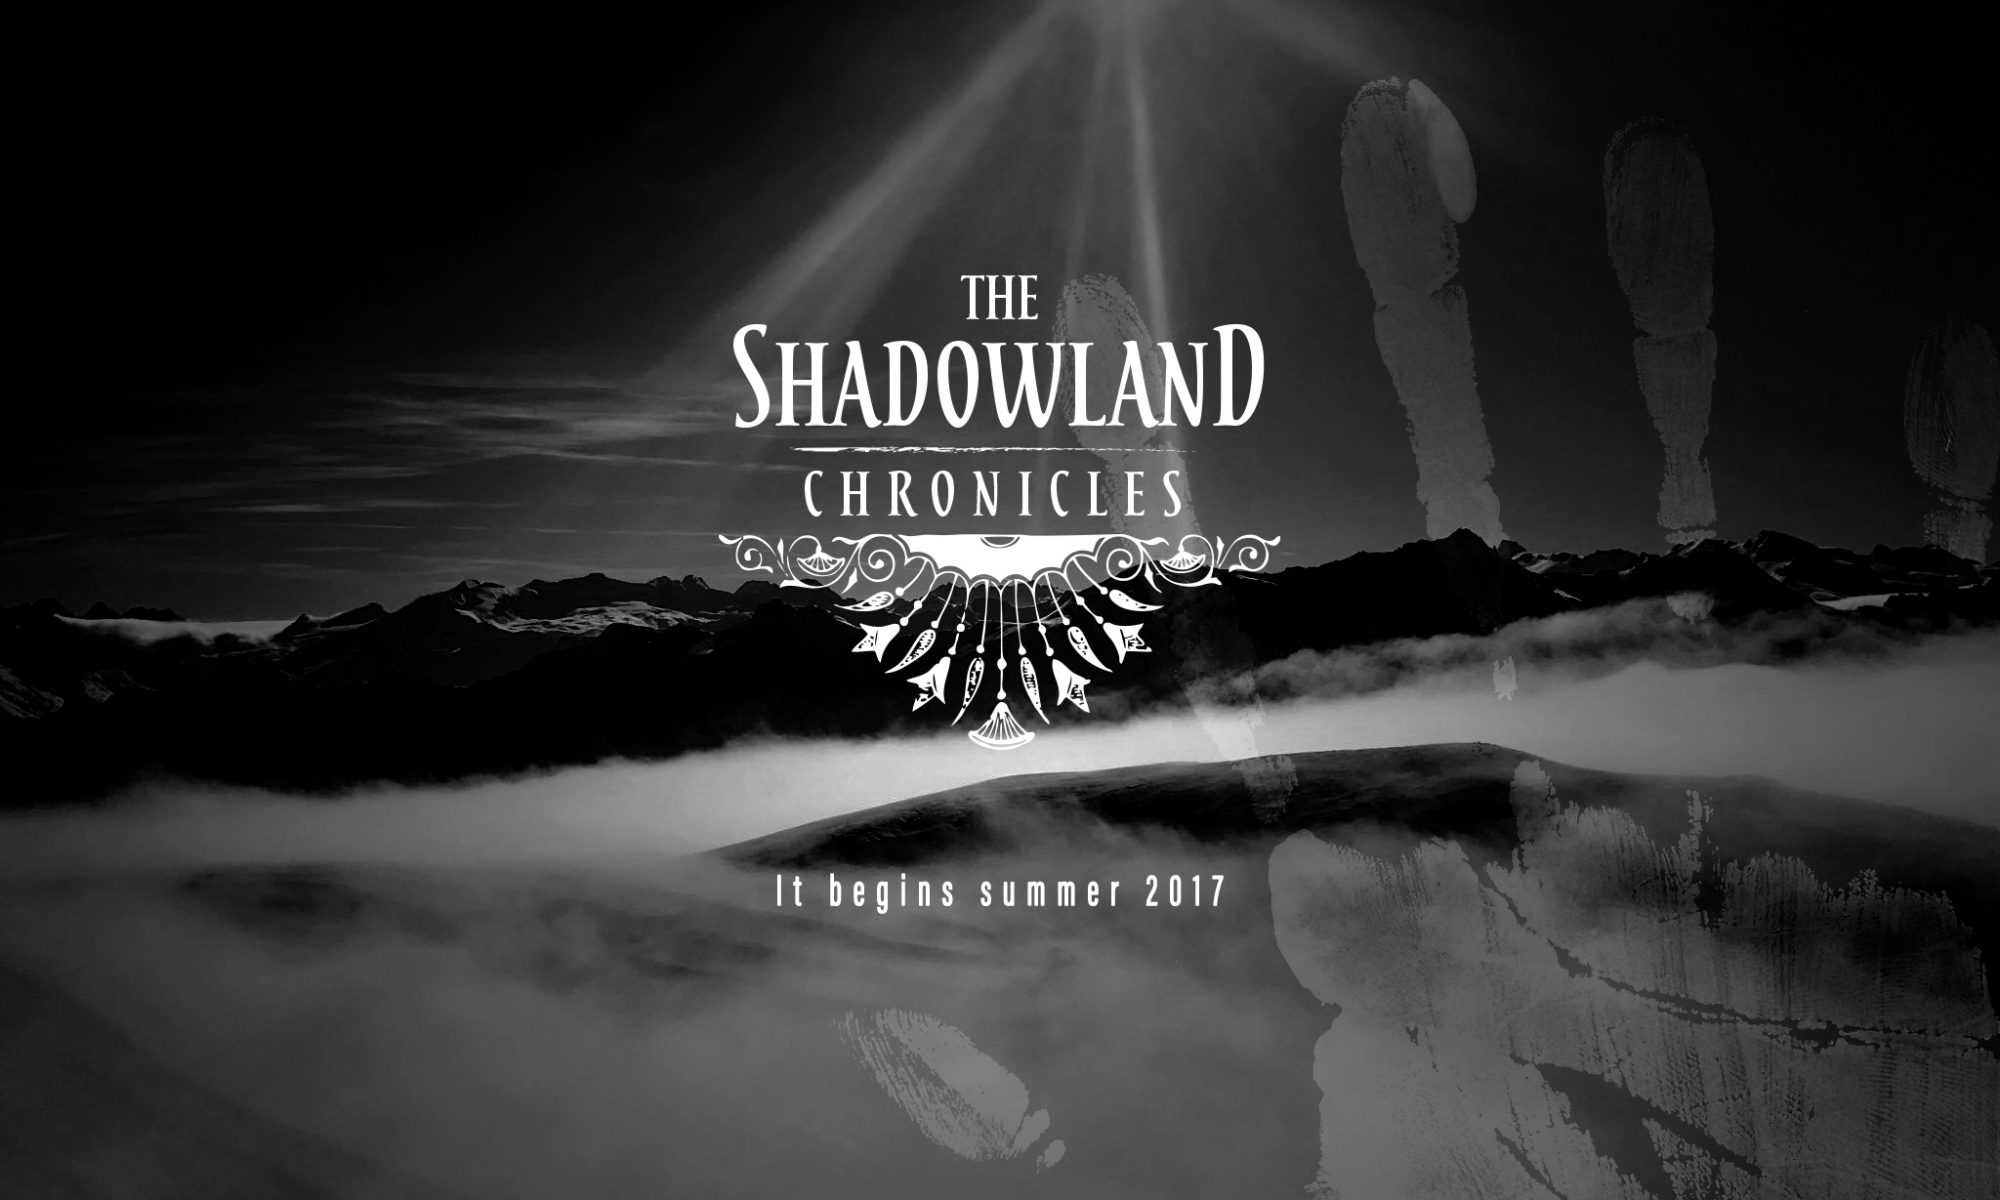 The Shadowland Chronicles